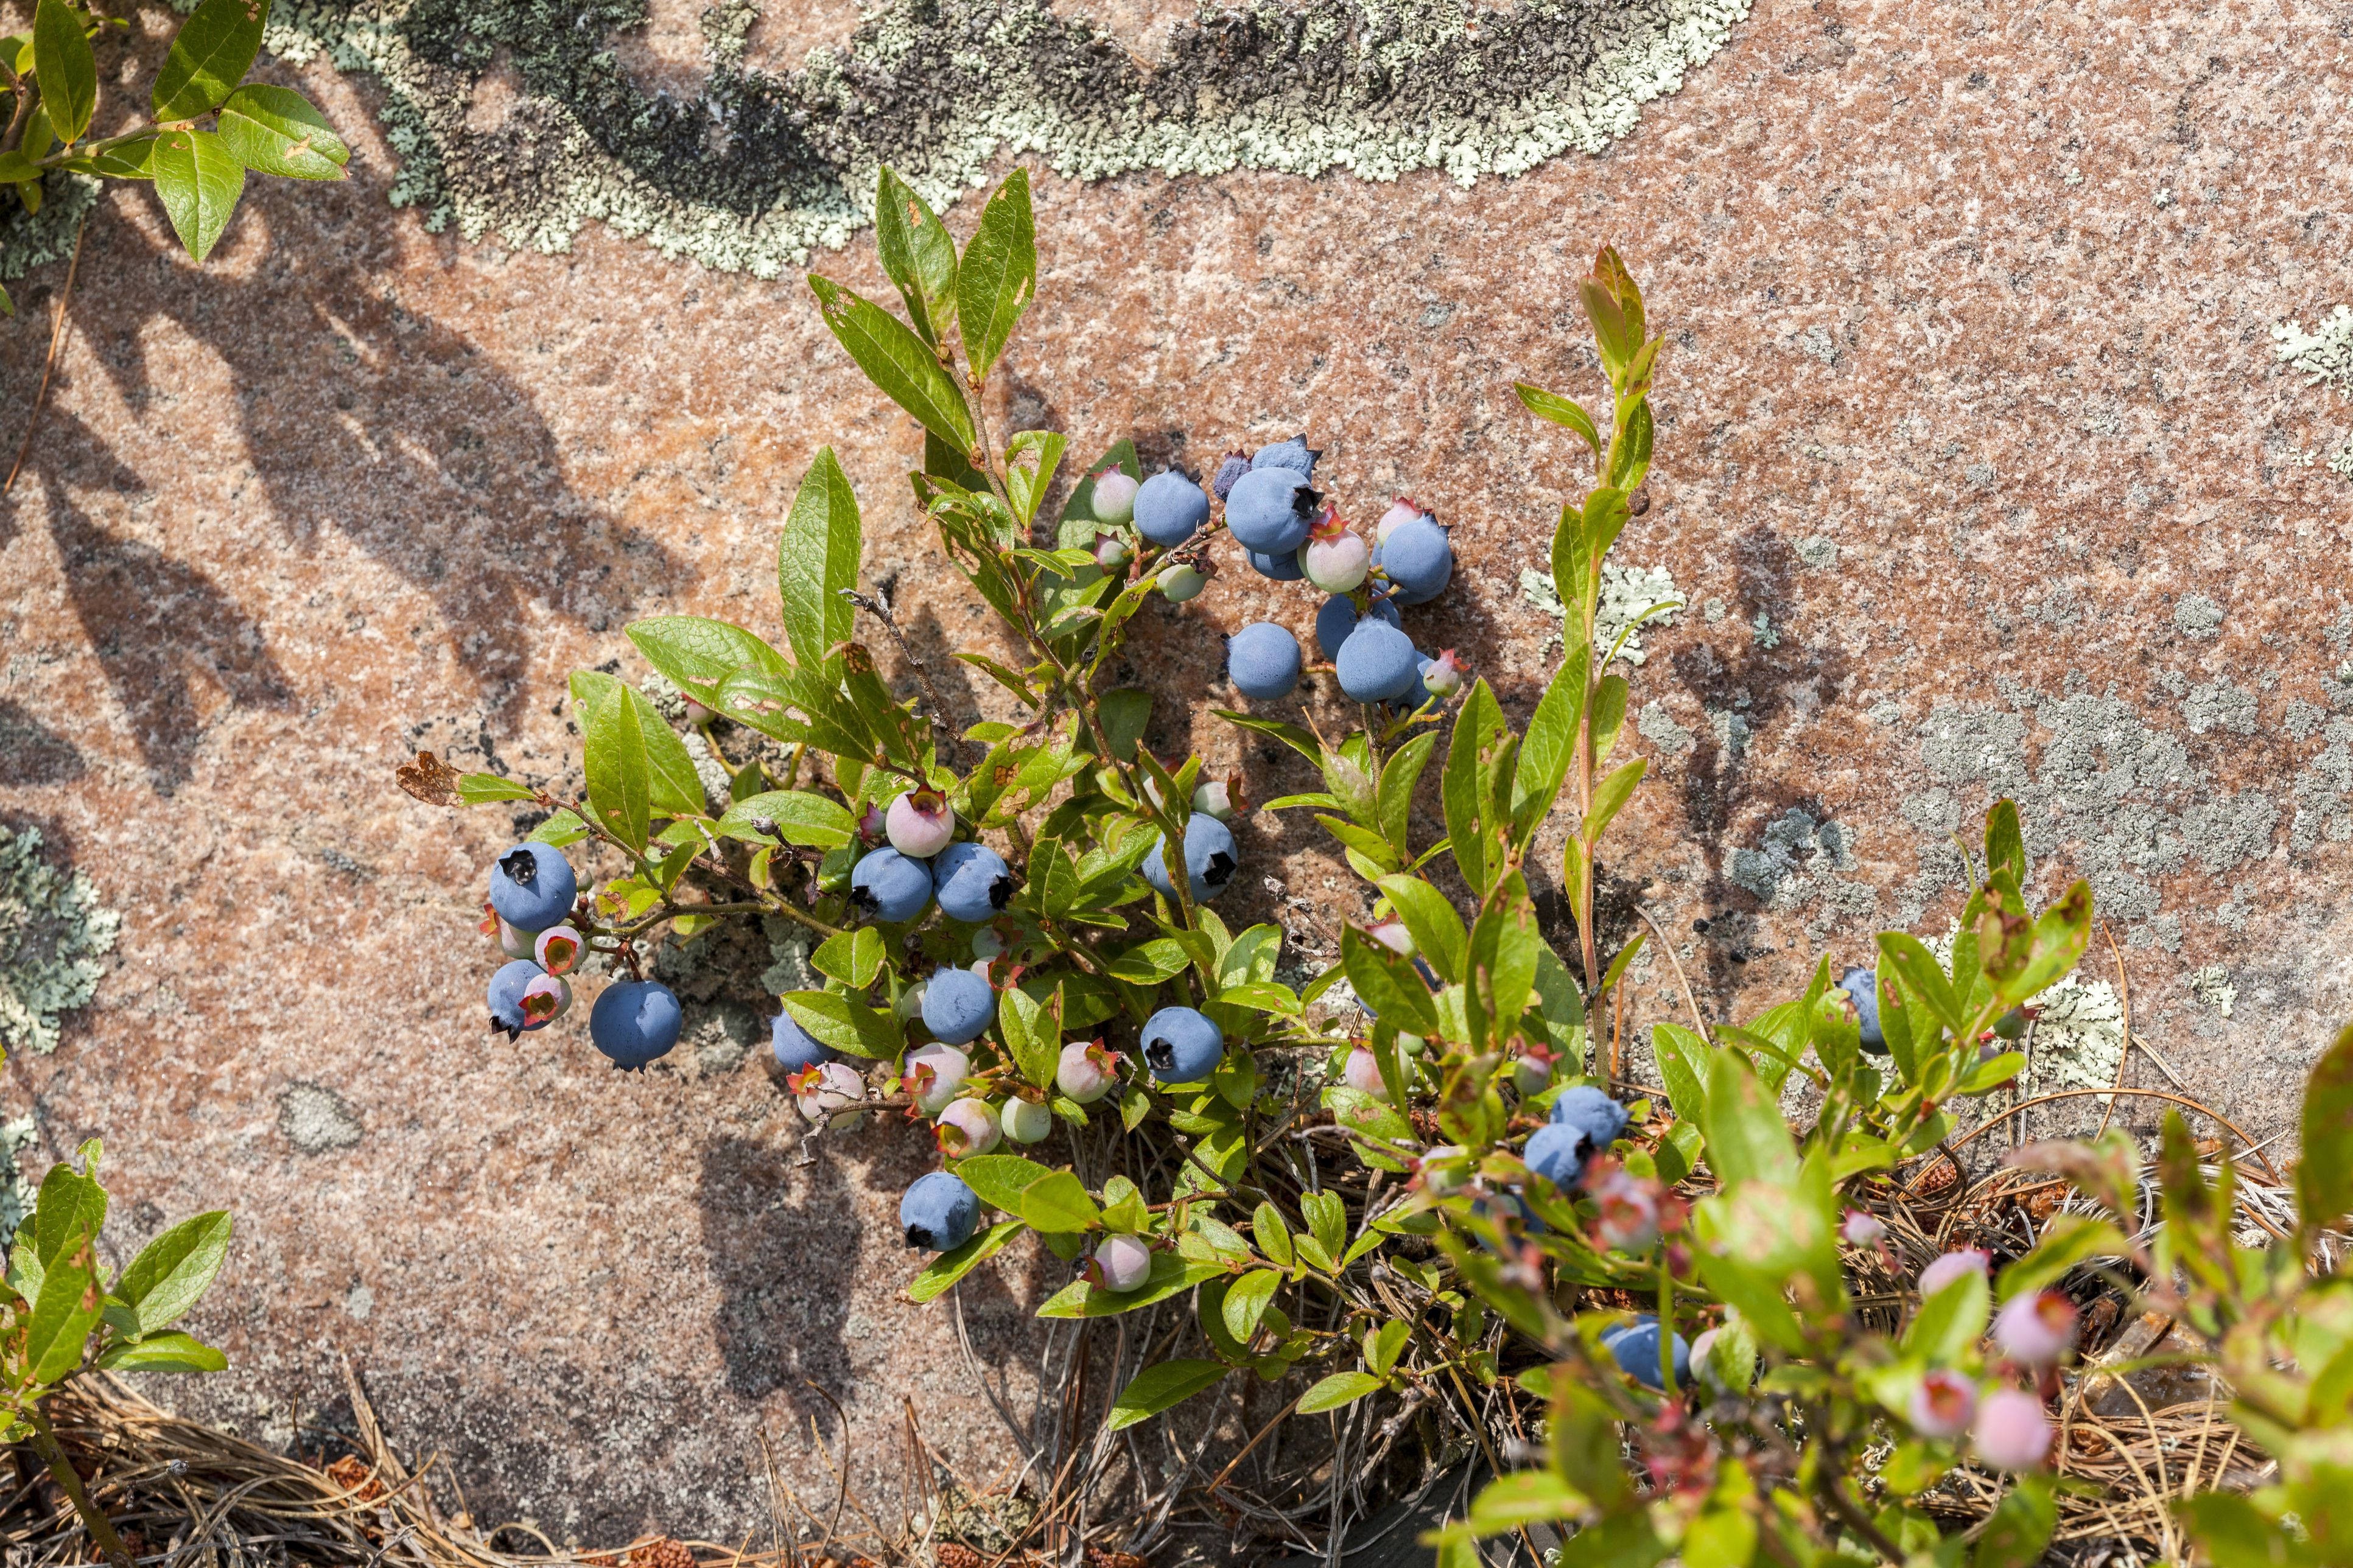 Wild blueberries,Vaccinium, and pink granite rock in Georgian Bay, French River Provincial Park, Ontario, Canada